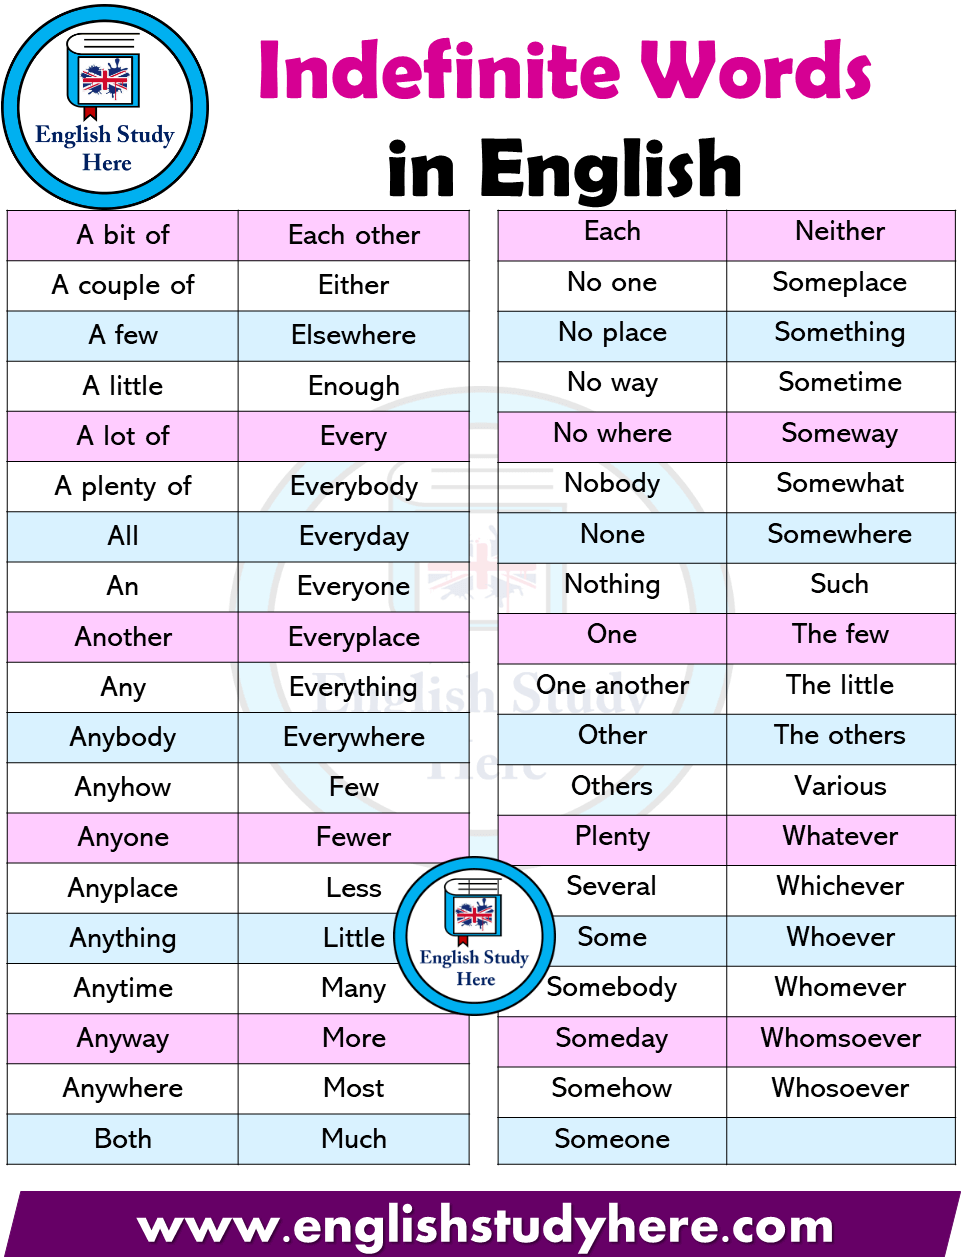 Indefinite Words List in English